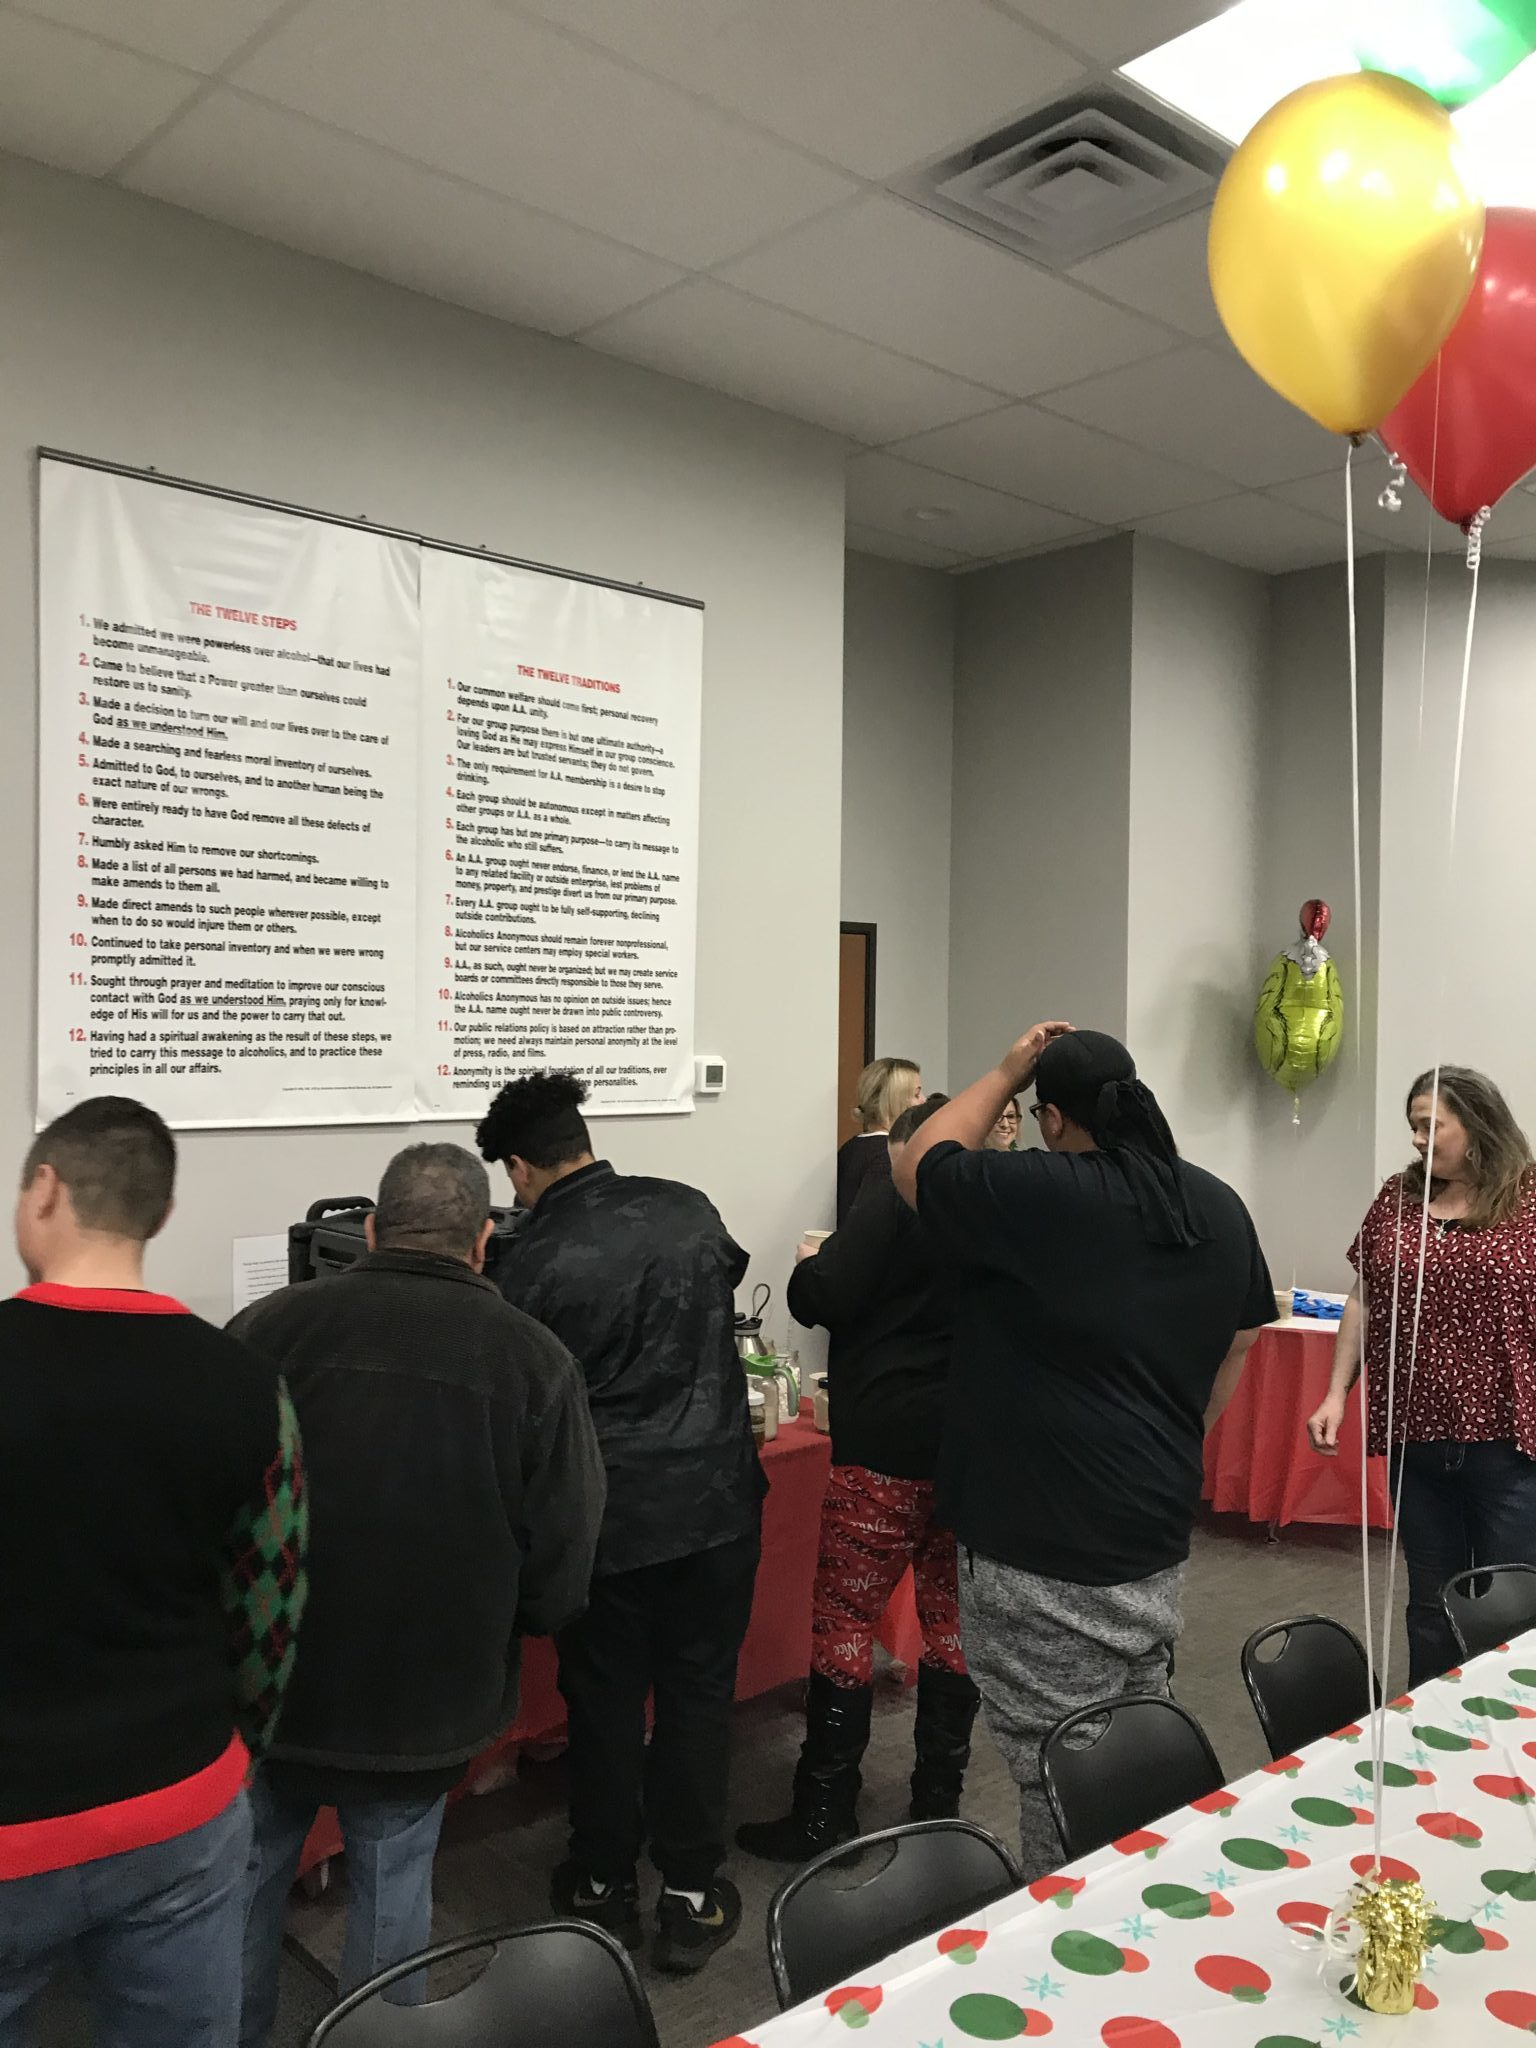 SONTX 2019 Christmas Party - Solutions of North Texas - Denton addiction services - transitional housing in DFW